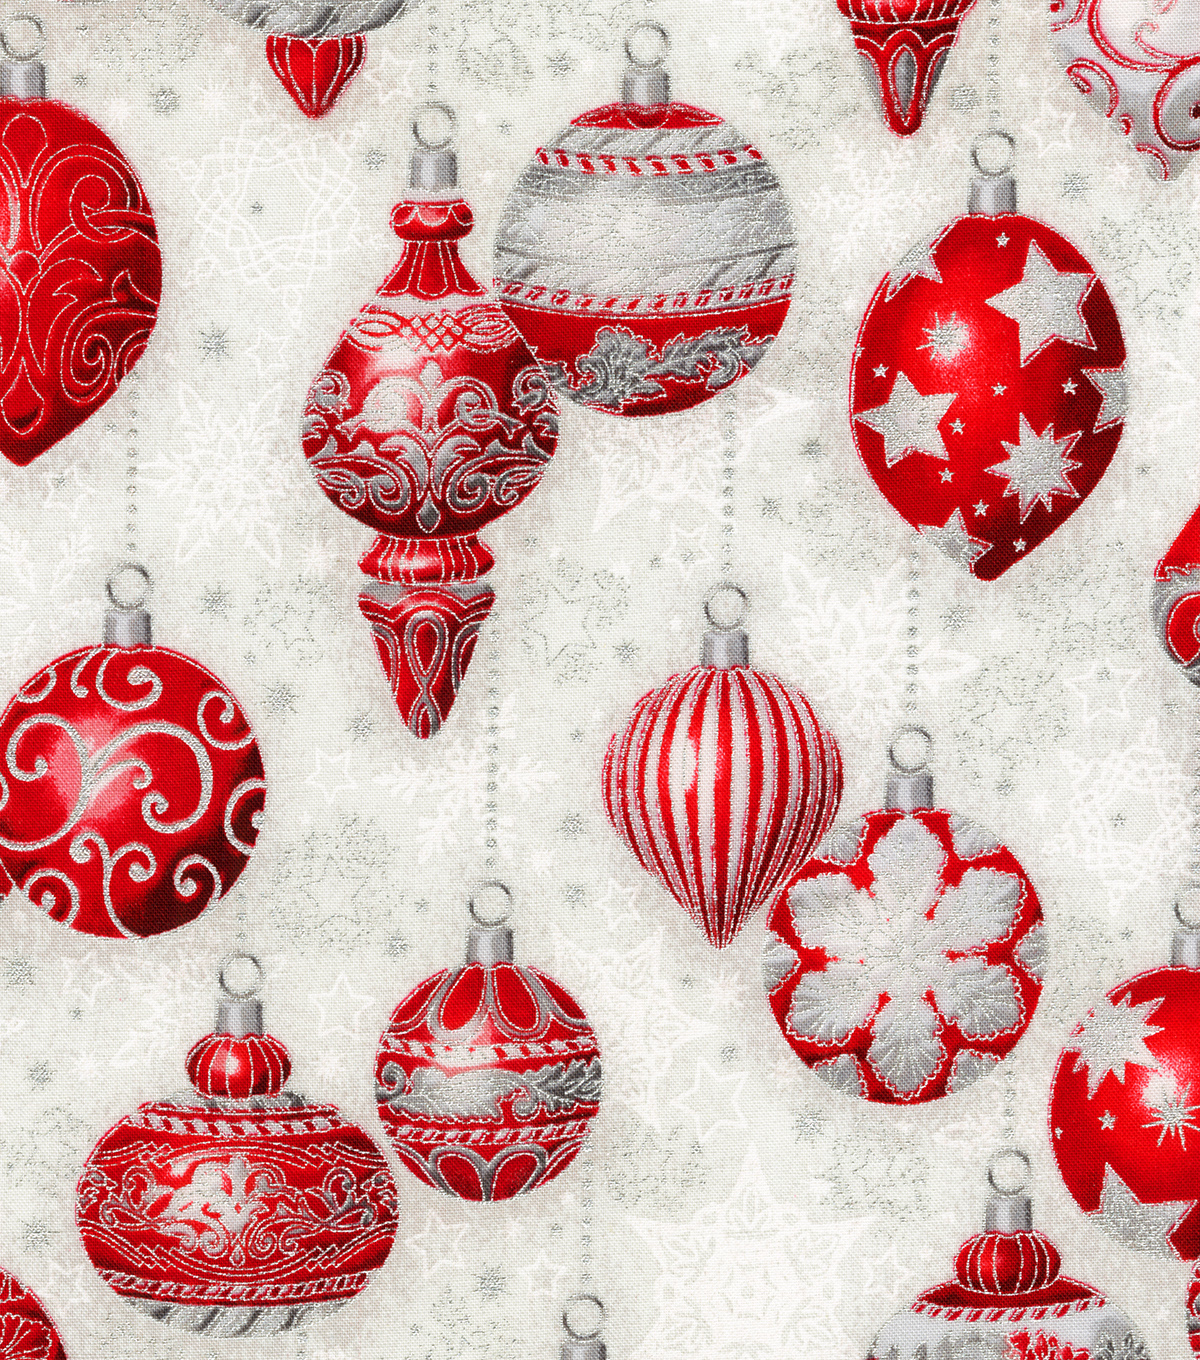 Christmas Cotton Fabric Decorative Ornaments